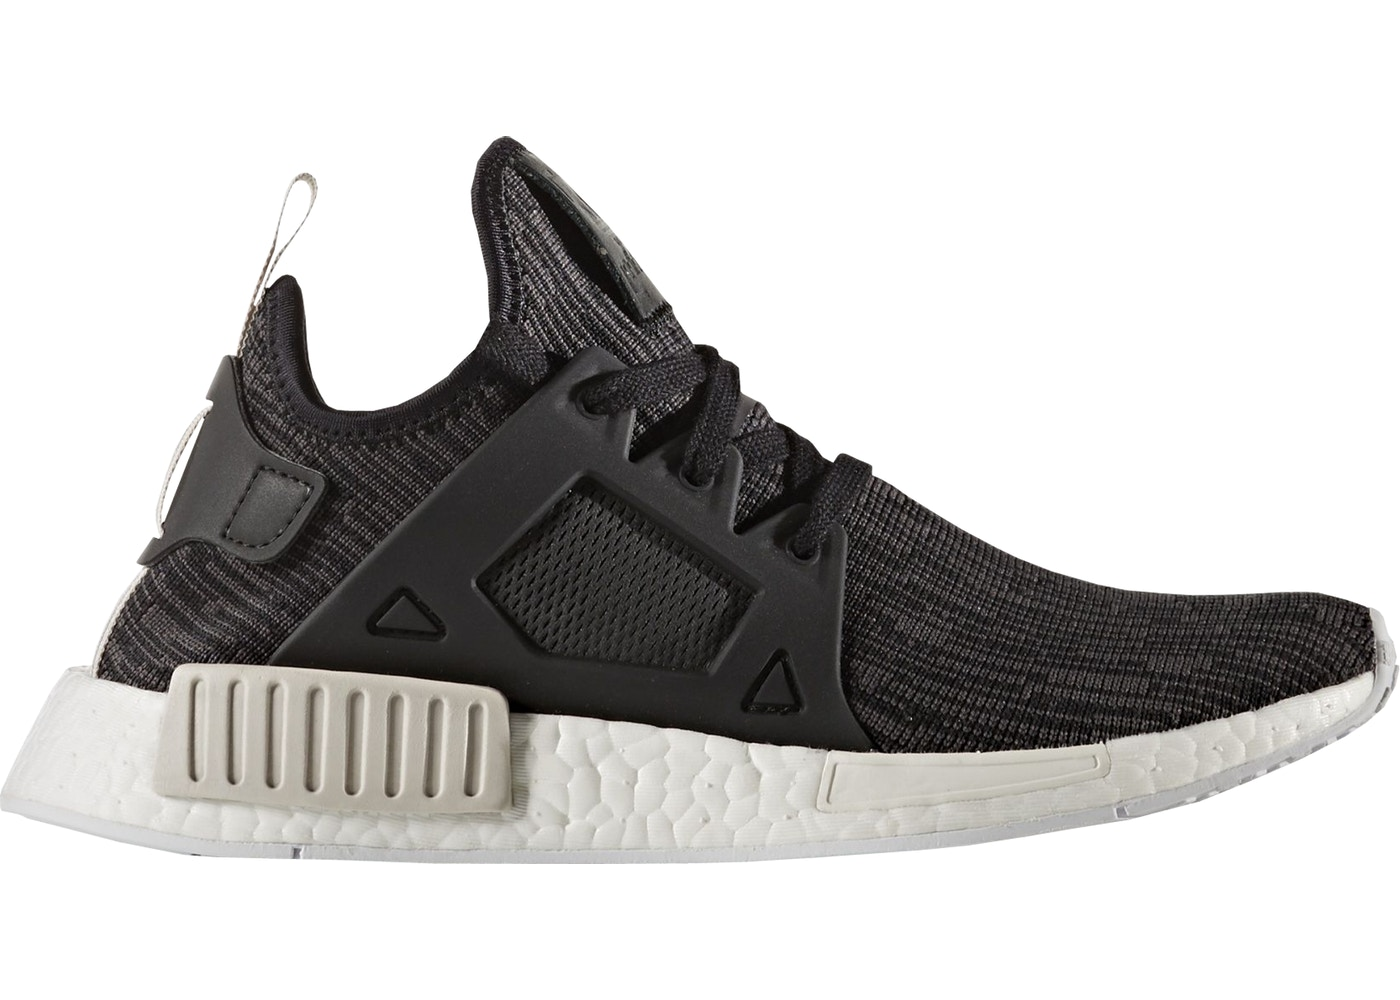 adidas NMD XR1 Glitch Camo Black | Novelship: Buy and Sell